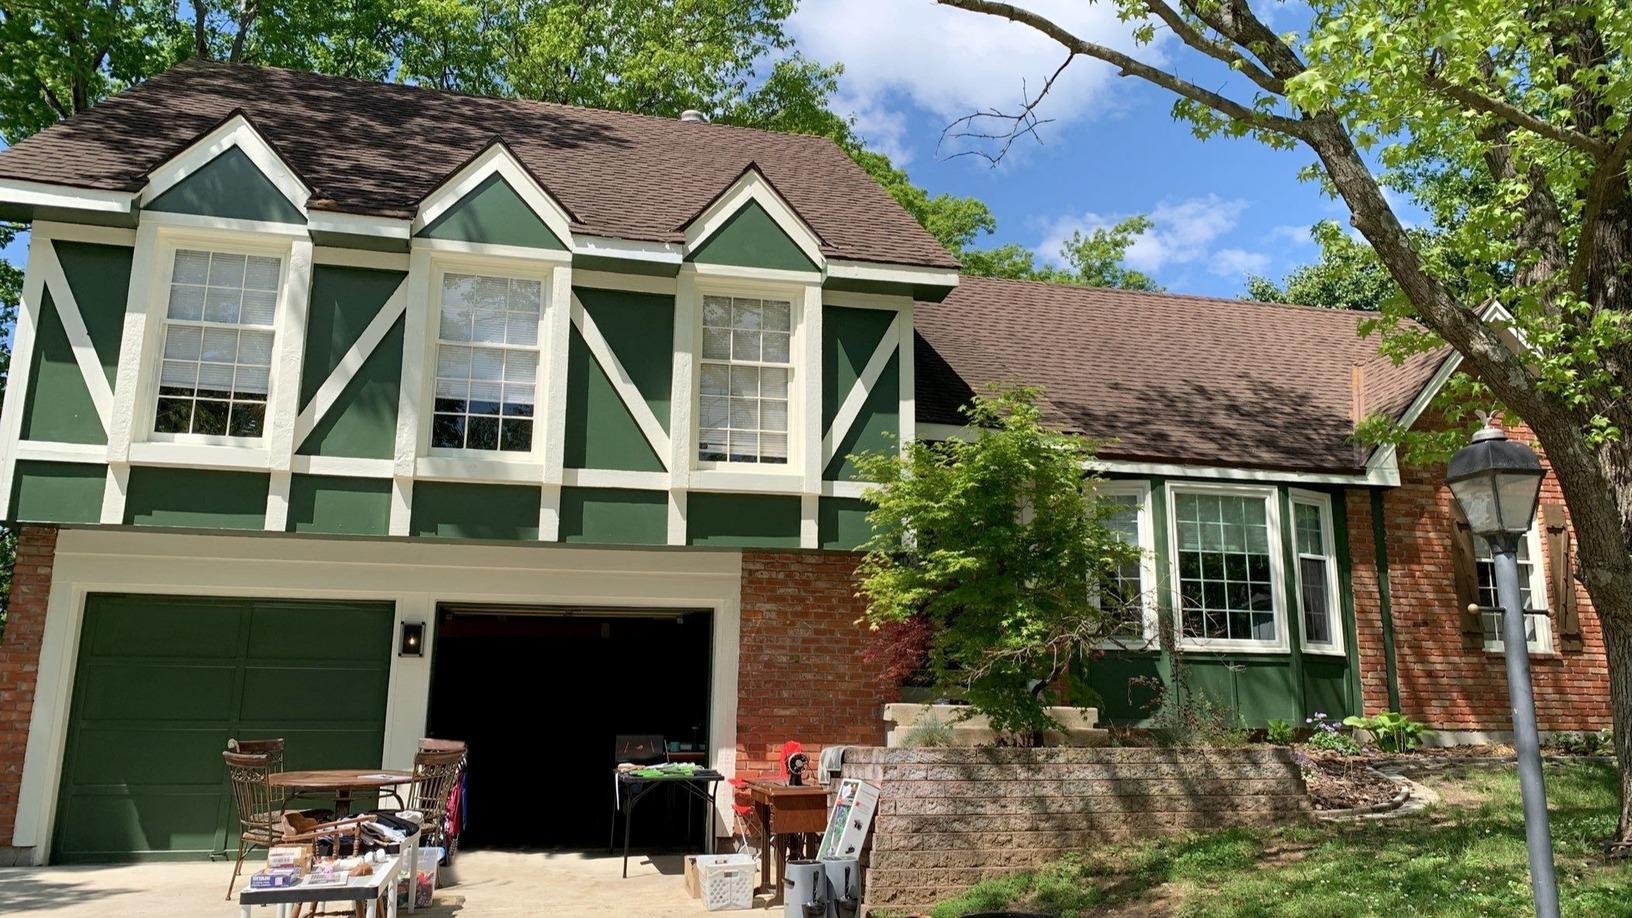 Gutters, Trim and New Paint on a Home in Kansas City, MO - After Photo